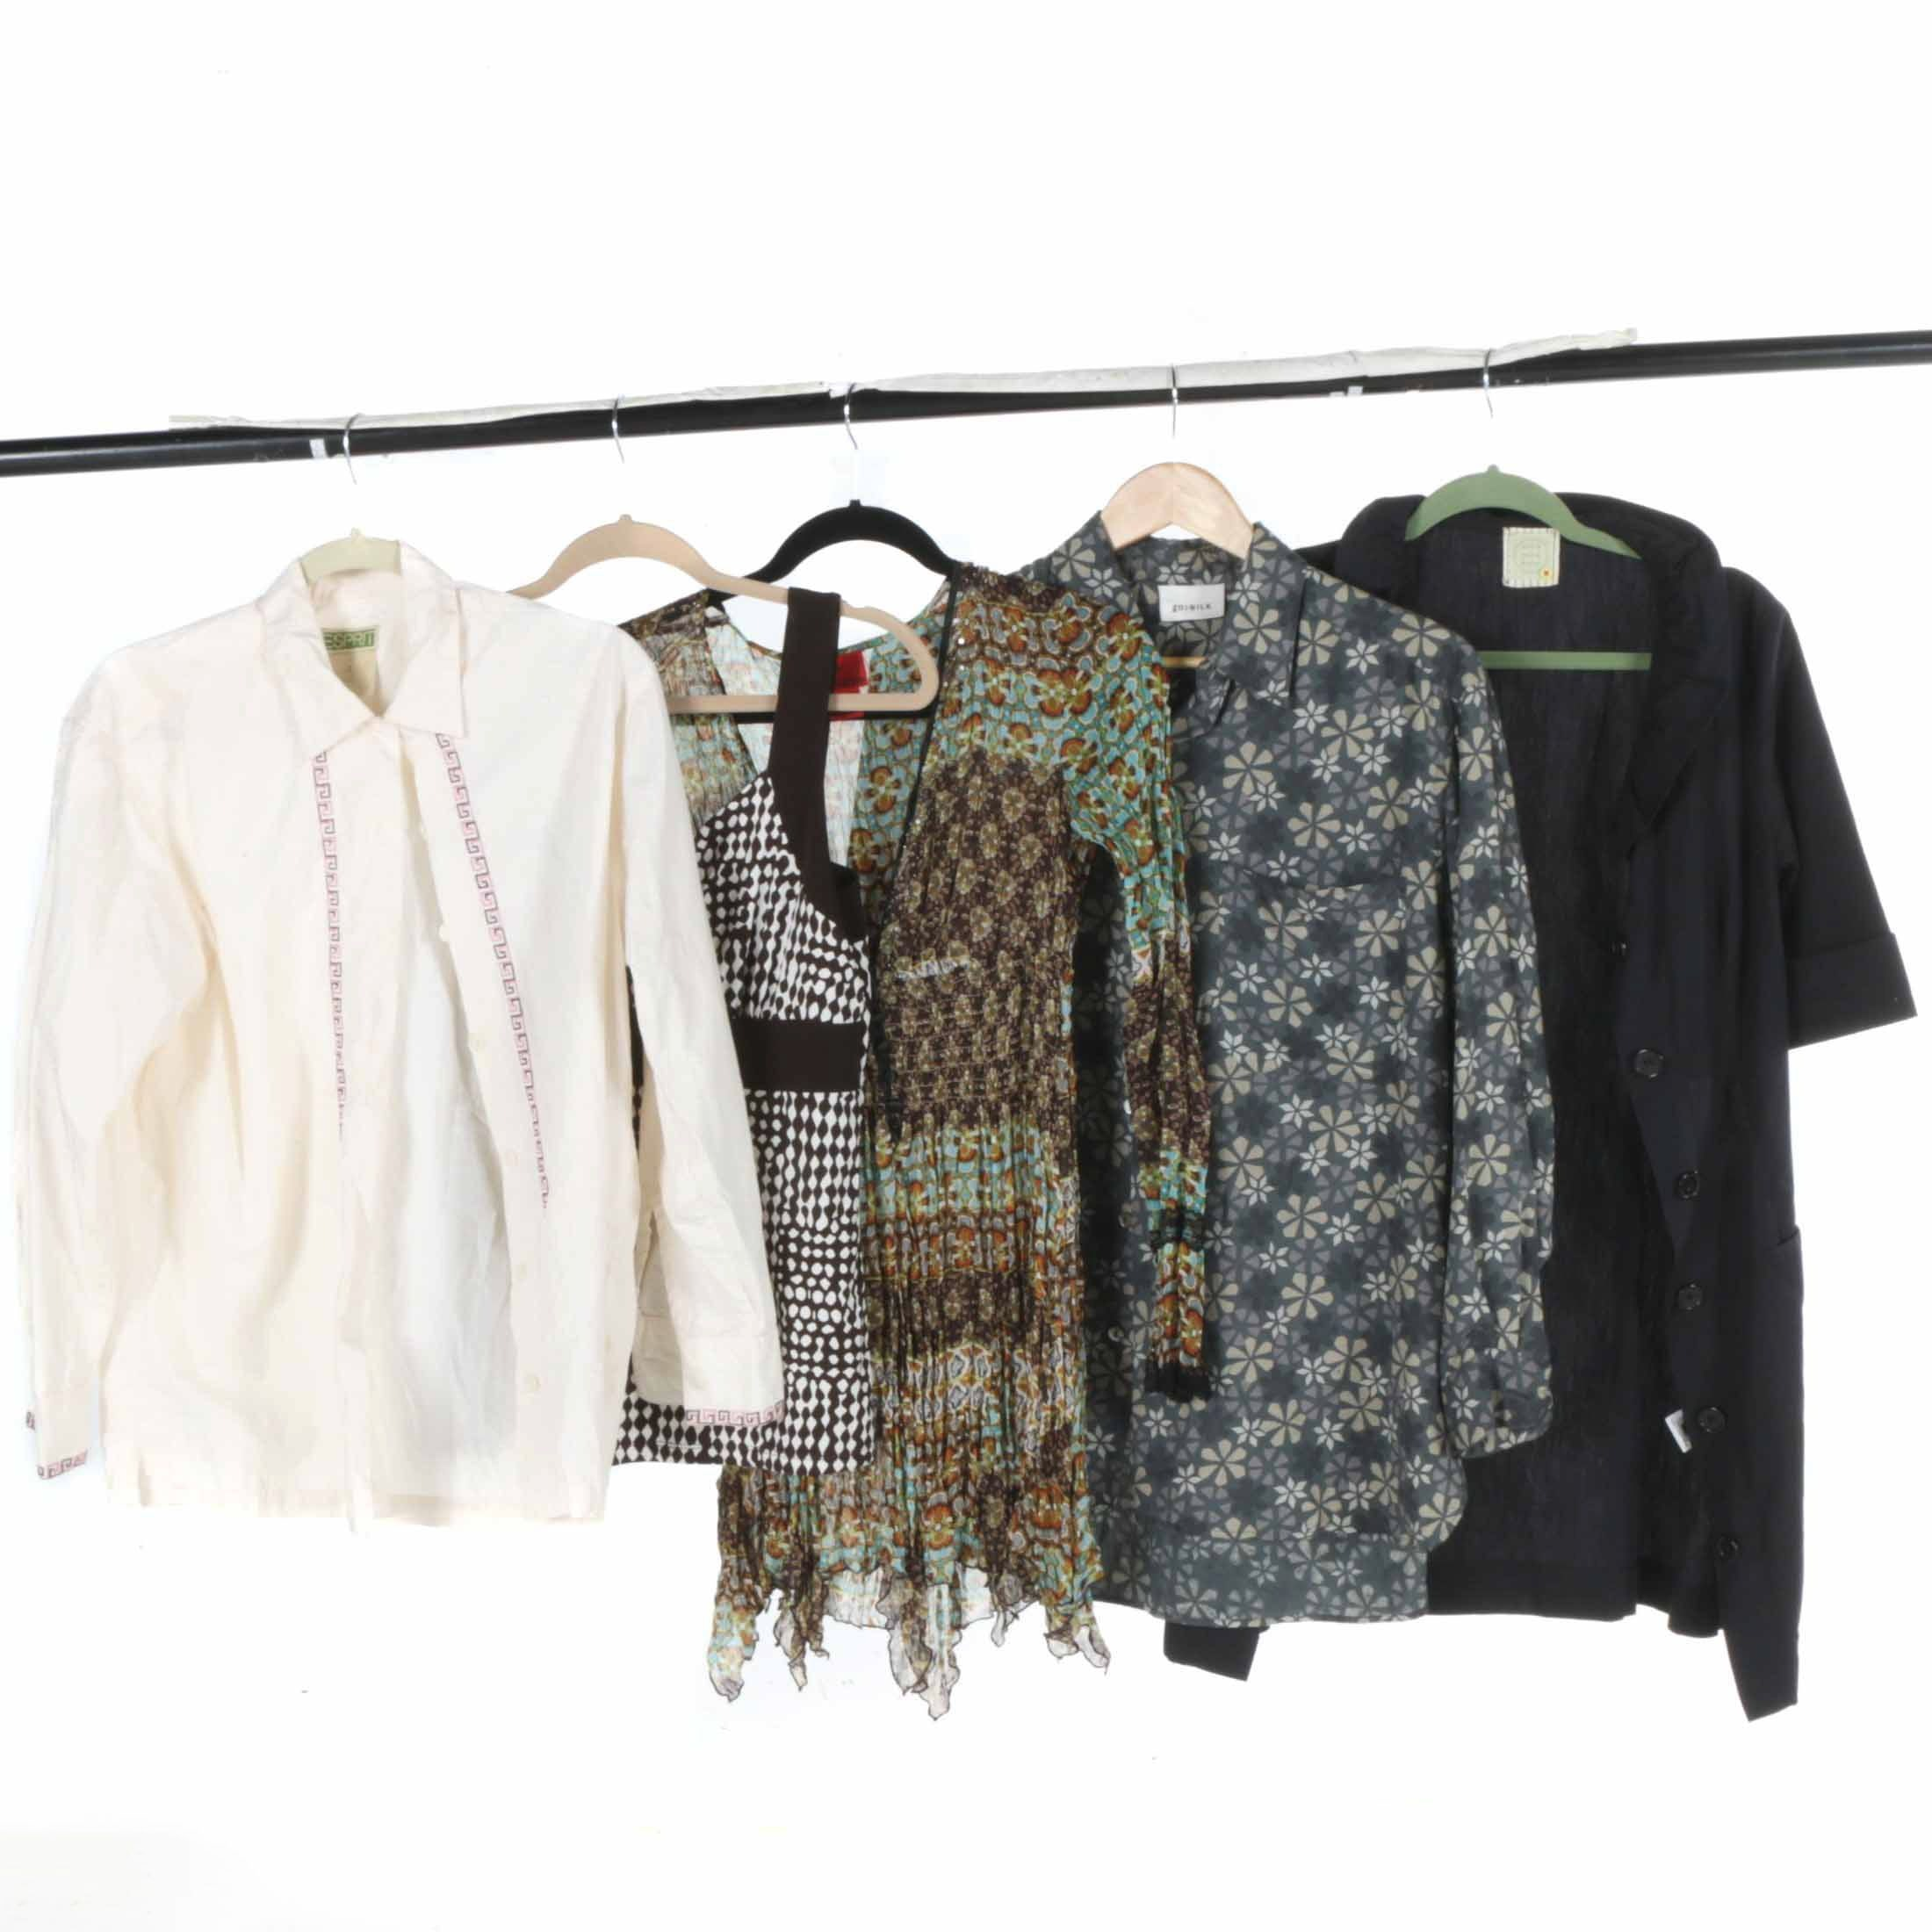 Women's Tops and Dresses